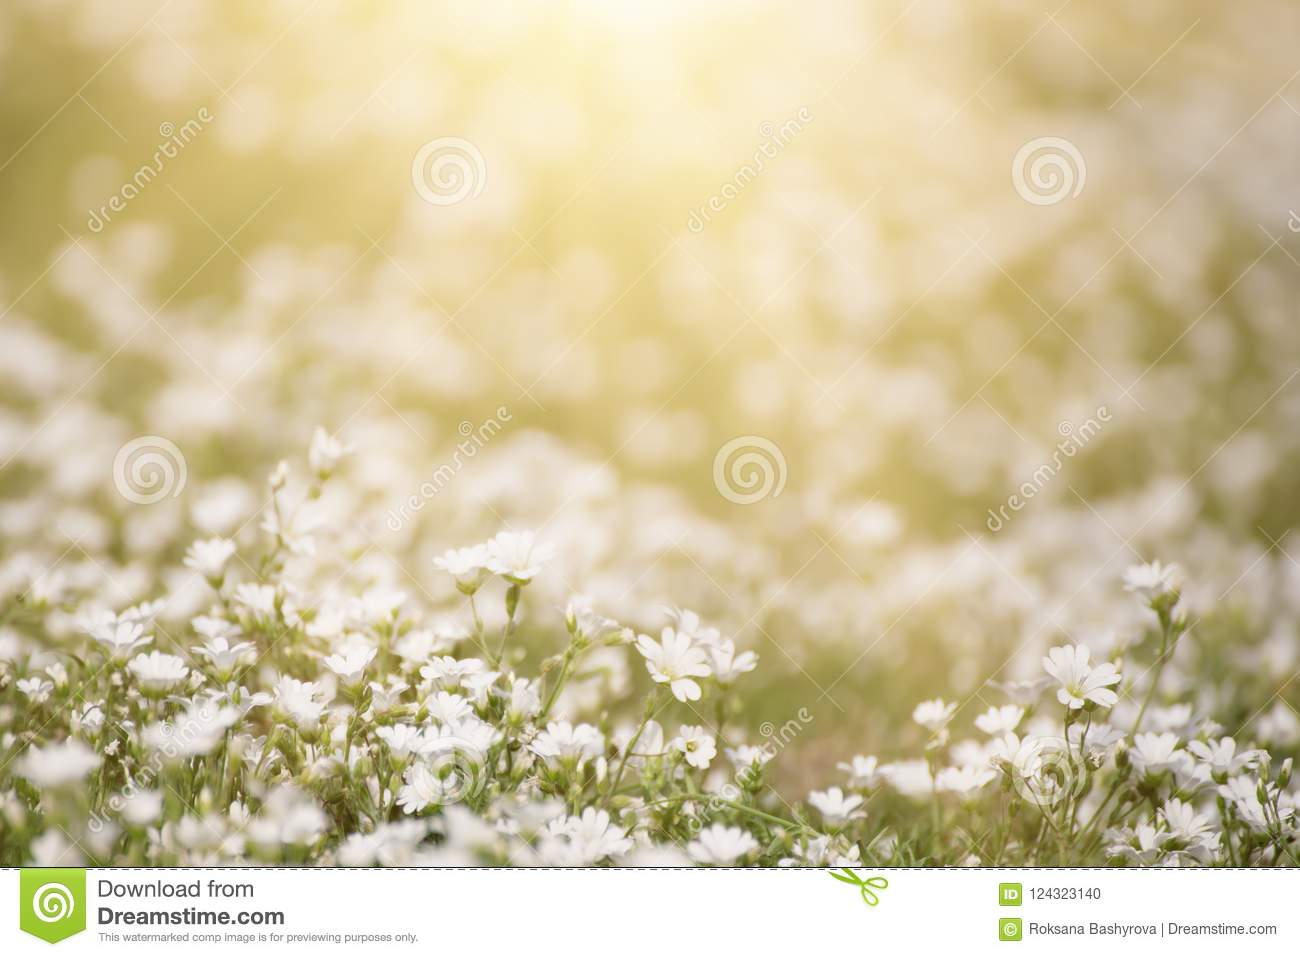 White Spring Flowers Stock Photo Image Of Beauty Ground 124323140